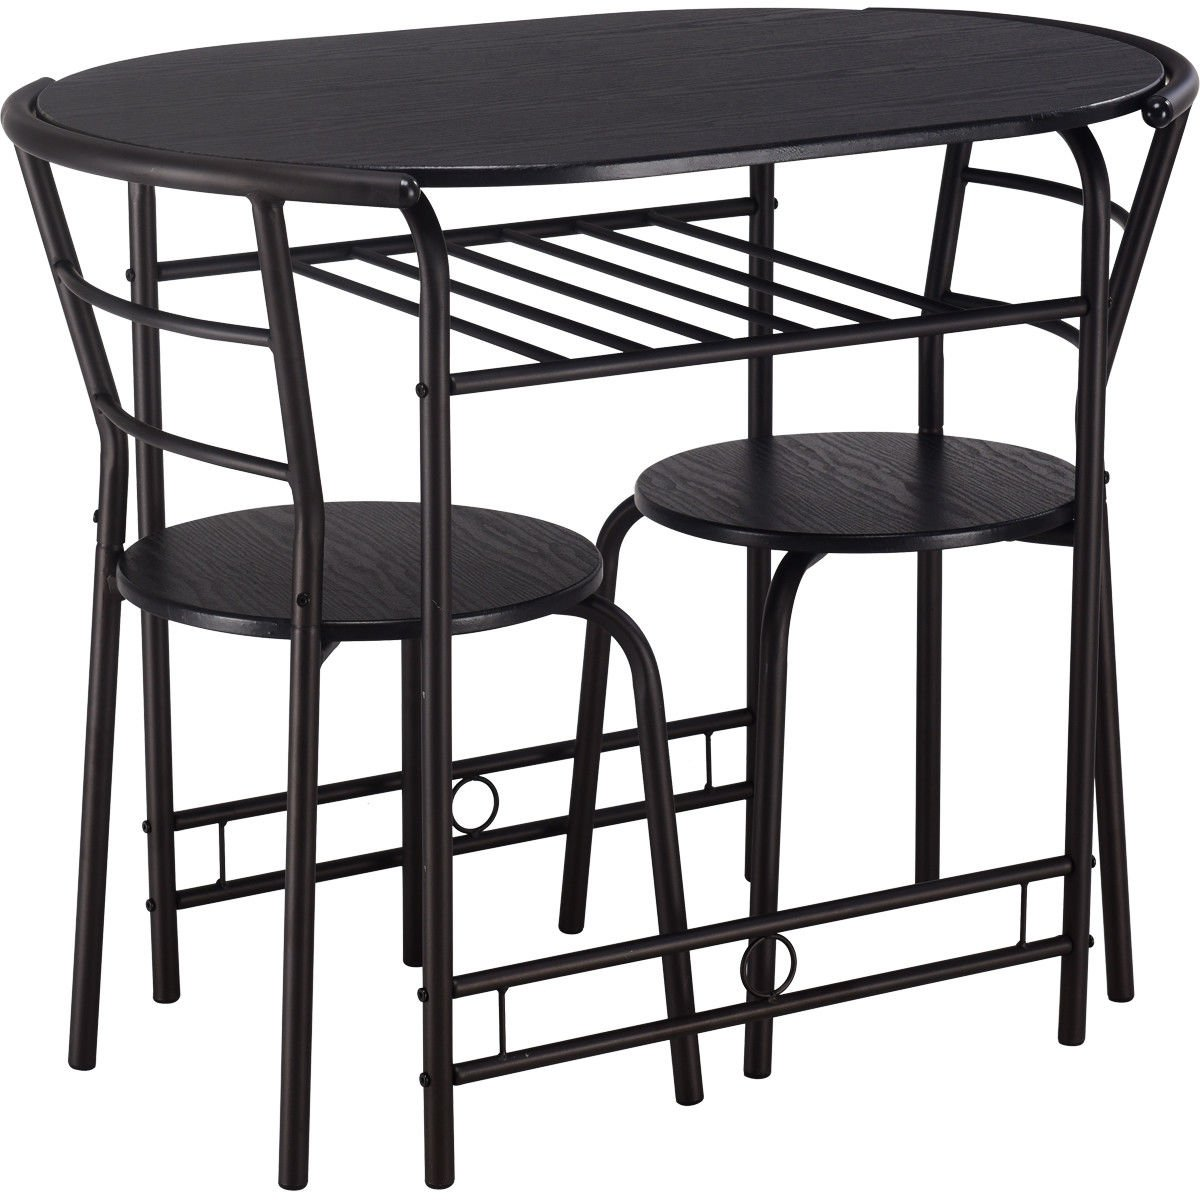 Giantex 3 PCS Dining Table Set w/1 Table and 2 Chairs Home Restaurant Breakfast Bistro Pub Kitchen Dining Room Furniture (Black) by Giantex (Image #8)